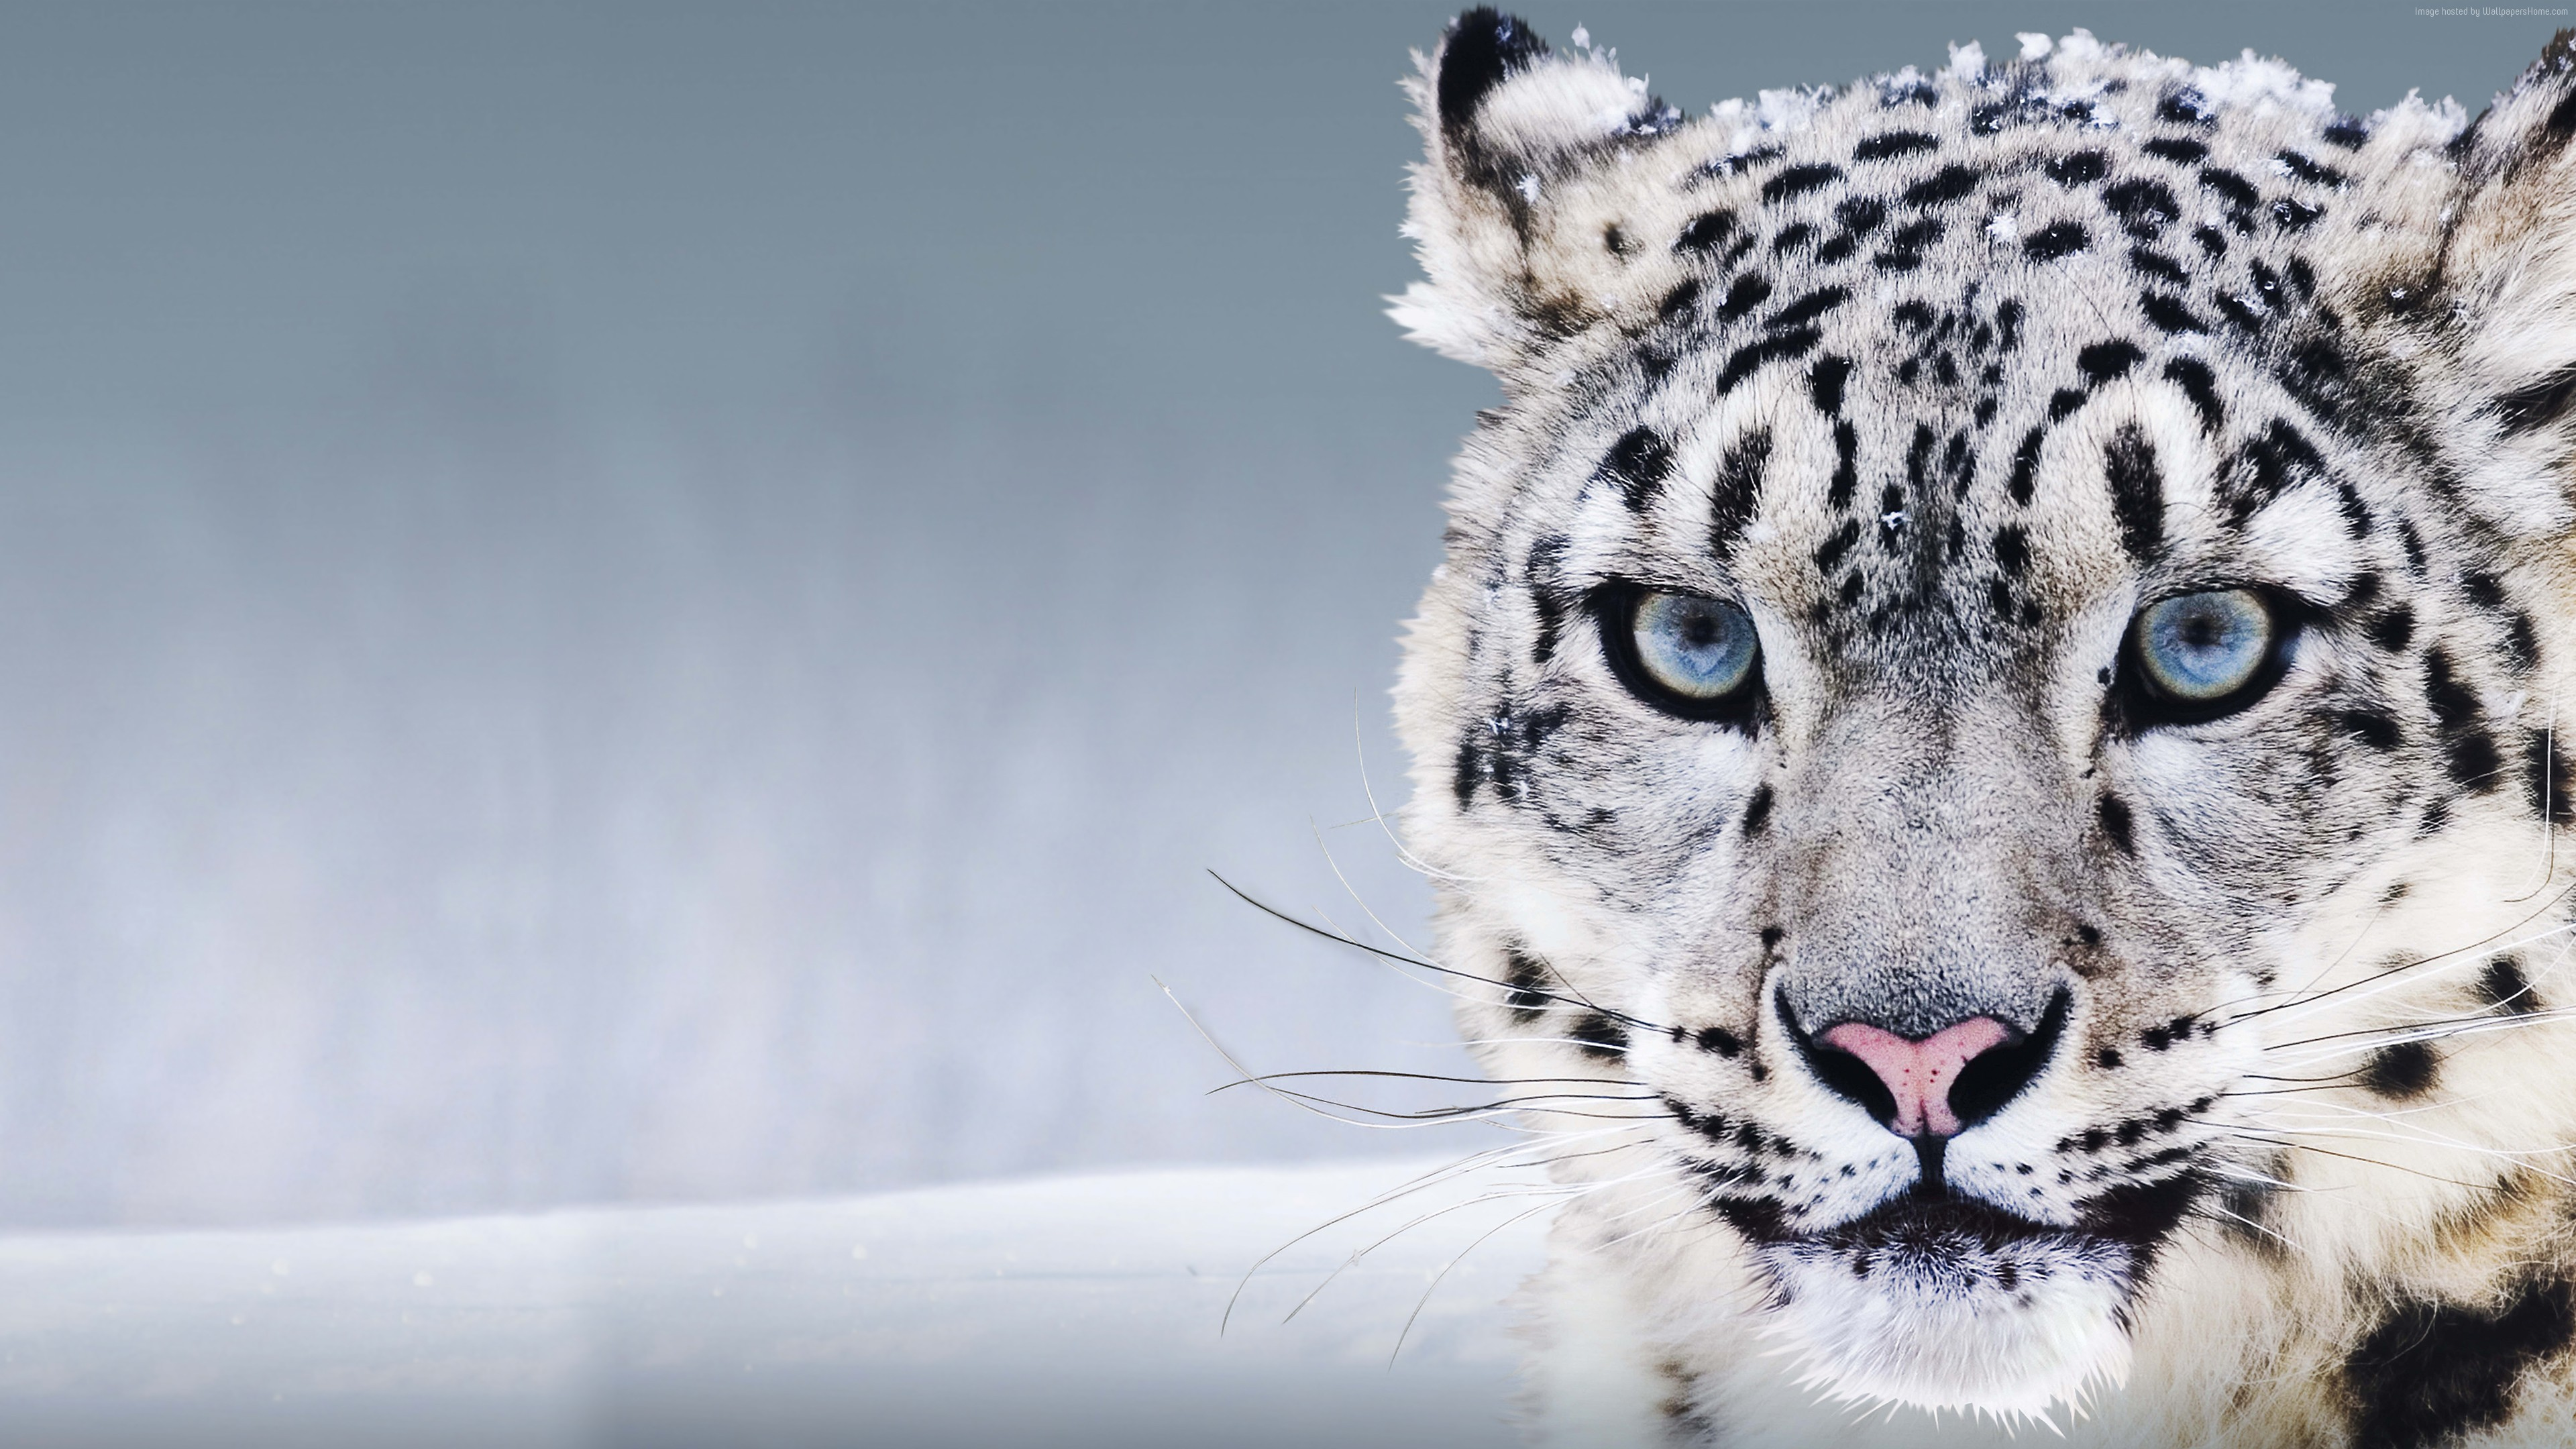 Snow Leopard With Blue Eyes Animal HD Wallpaper 3840x2160